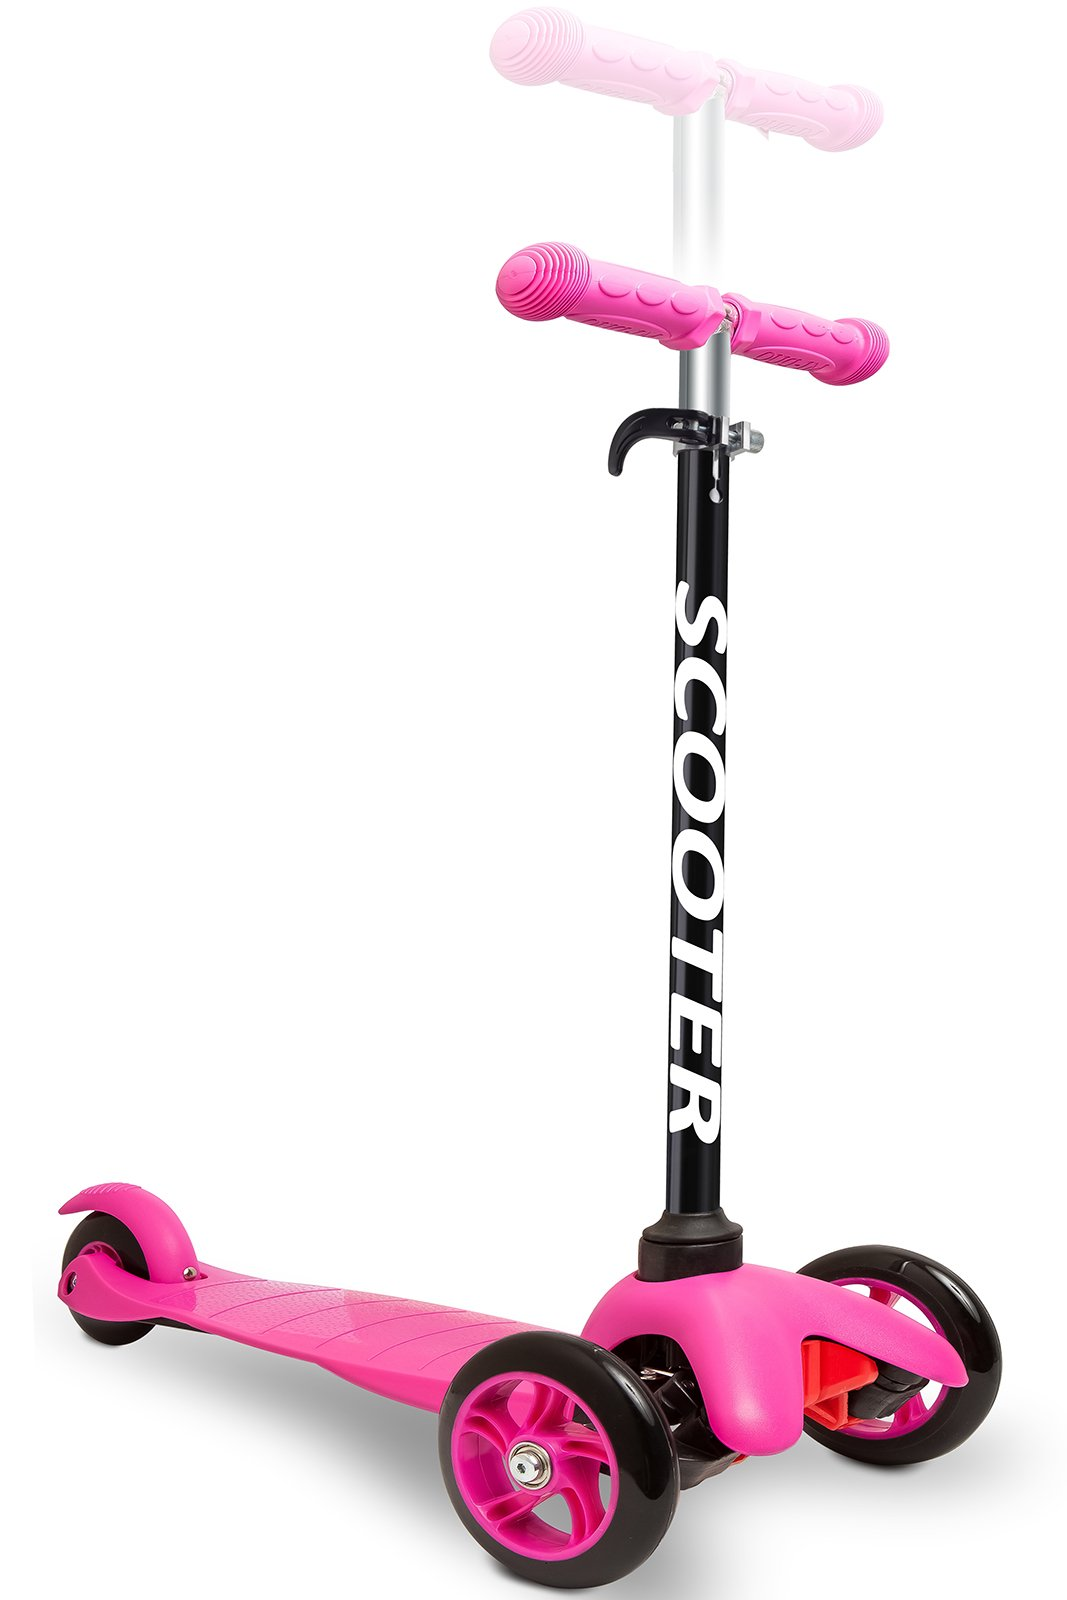 Den Haven Scooter for Kids - Deluxe Aluminum 3 Wheel Glider with Kick n Go, Lean 2 Turn, Step 4 Brake-Pink (Pink) by Den Haven (Image #2)